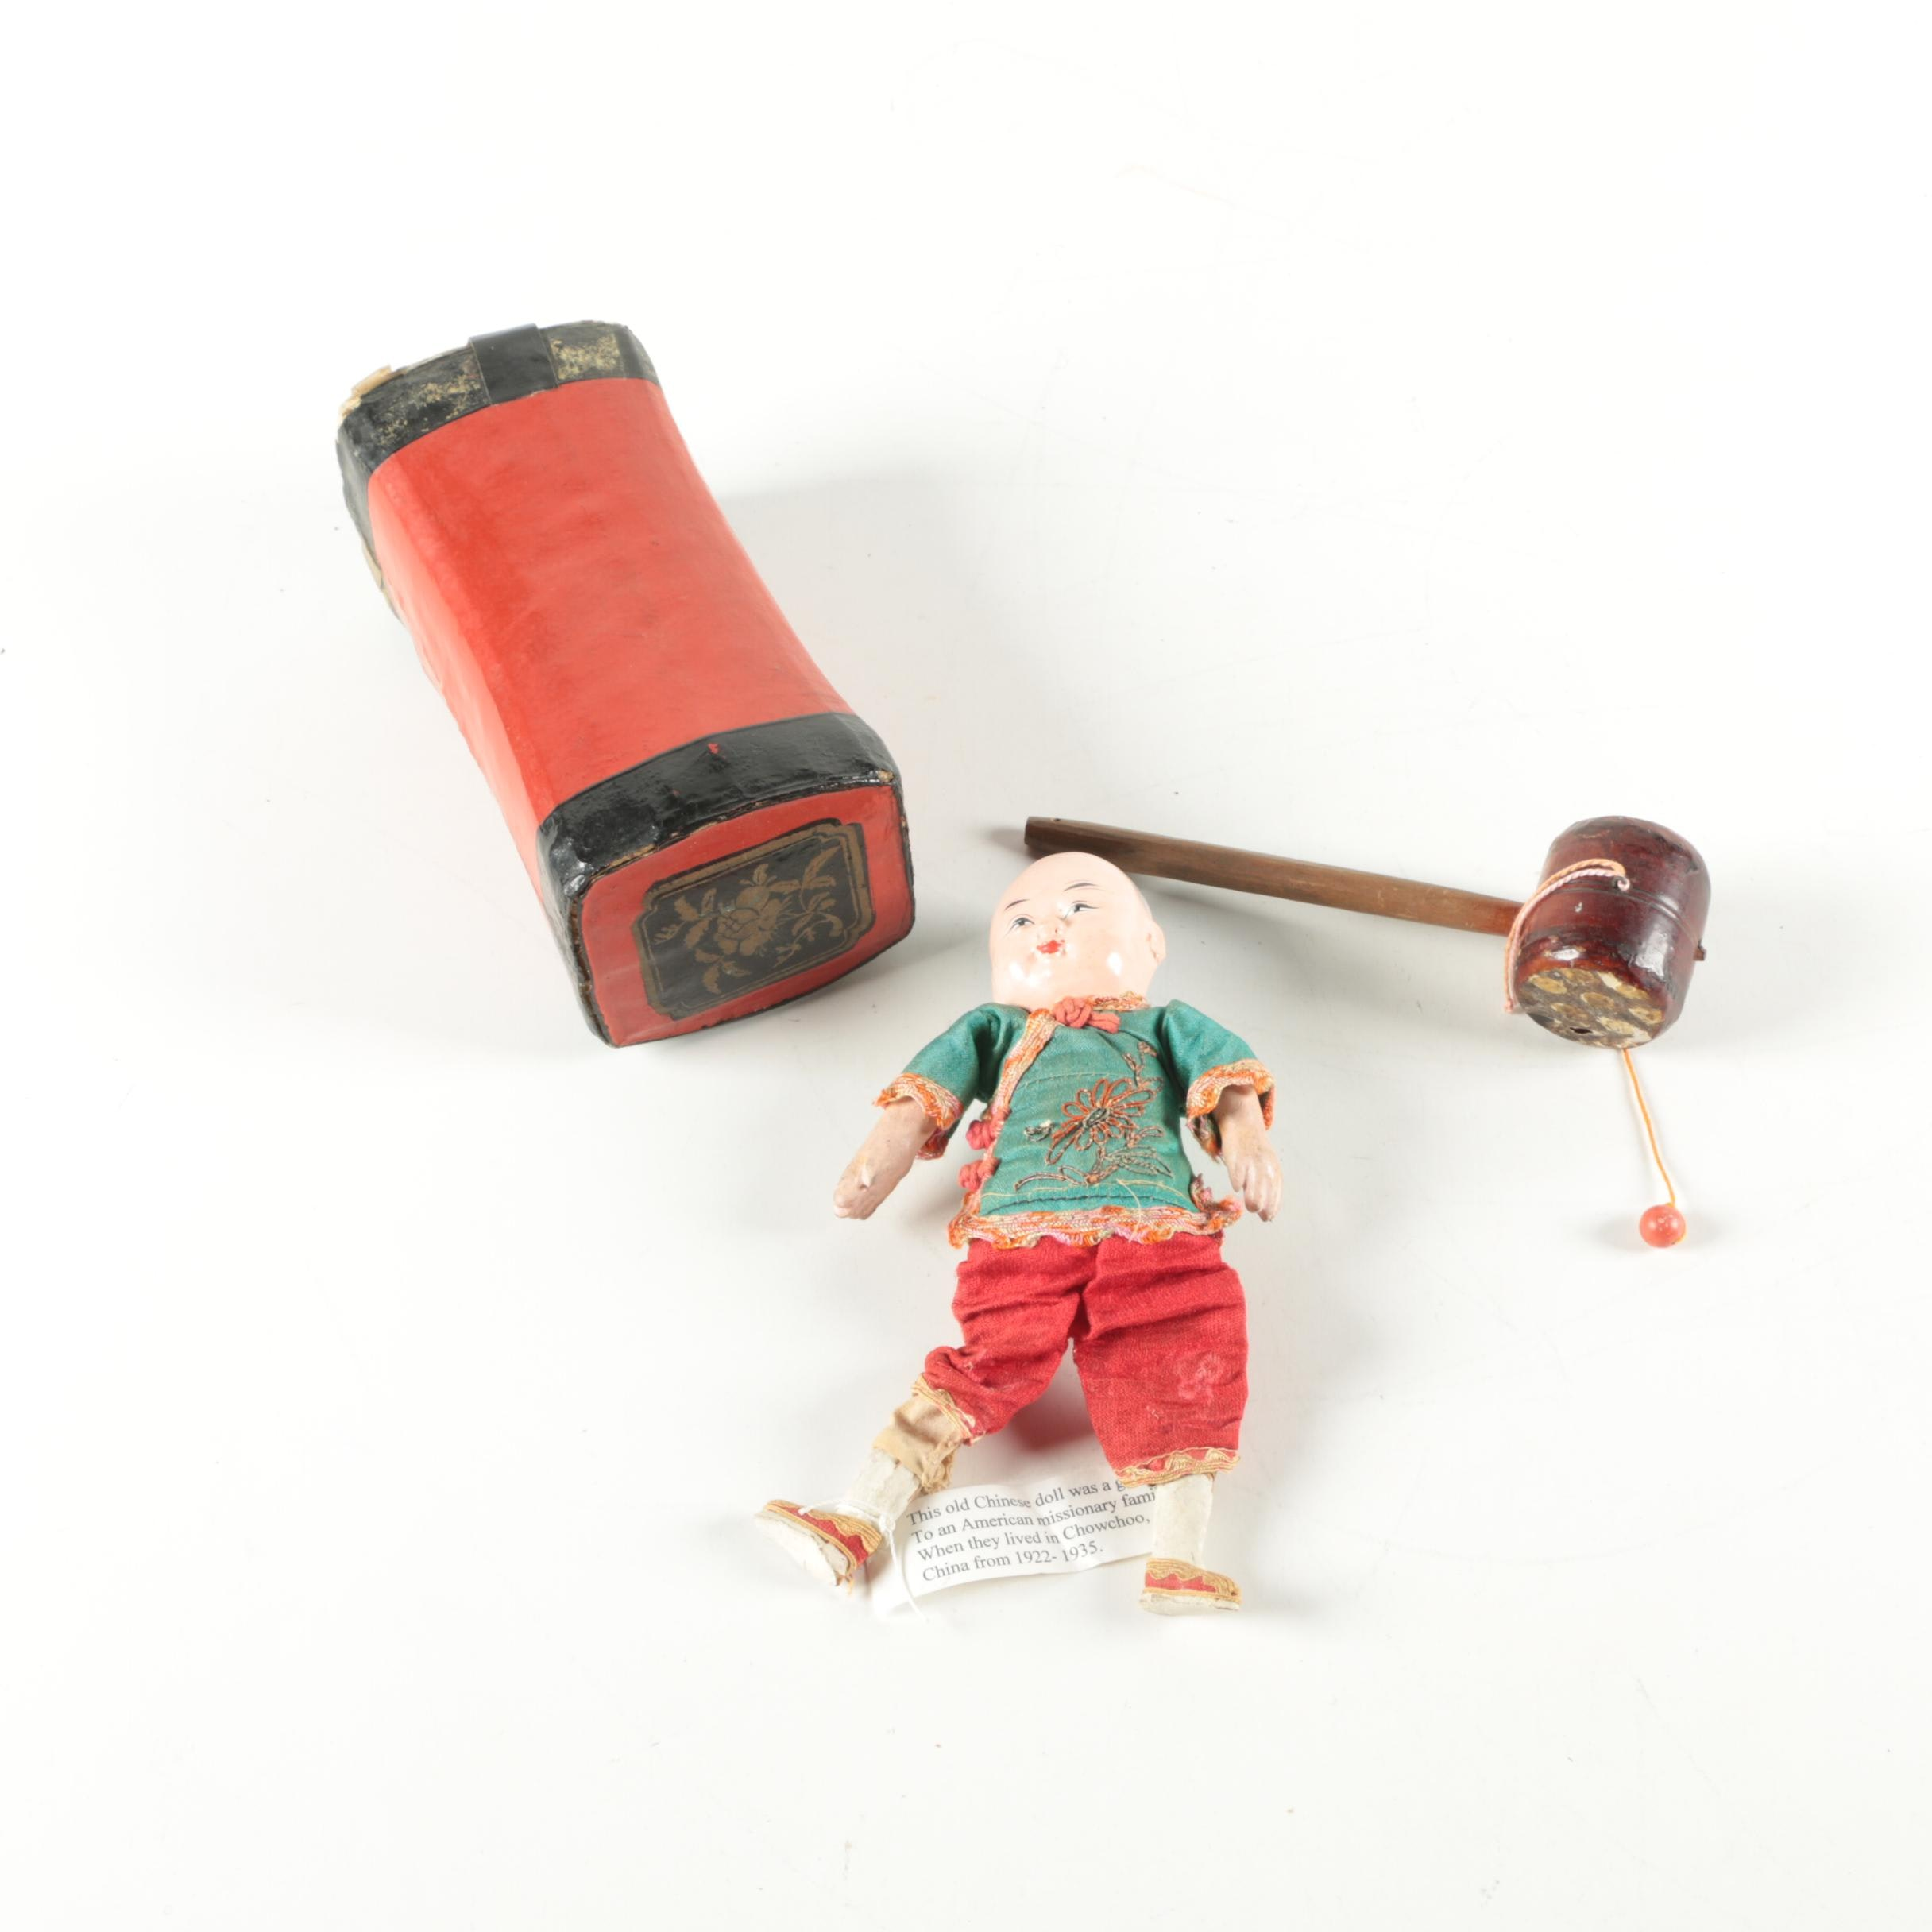 1920s Chinese Souvenir Doll, Pillow and Game